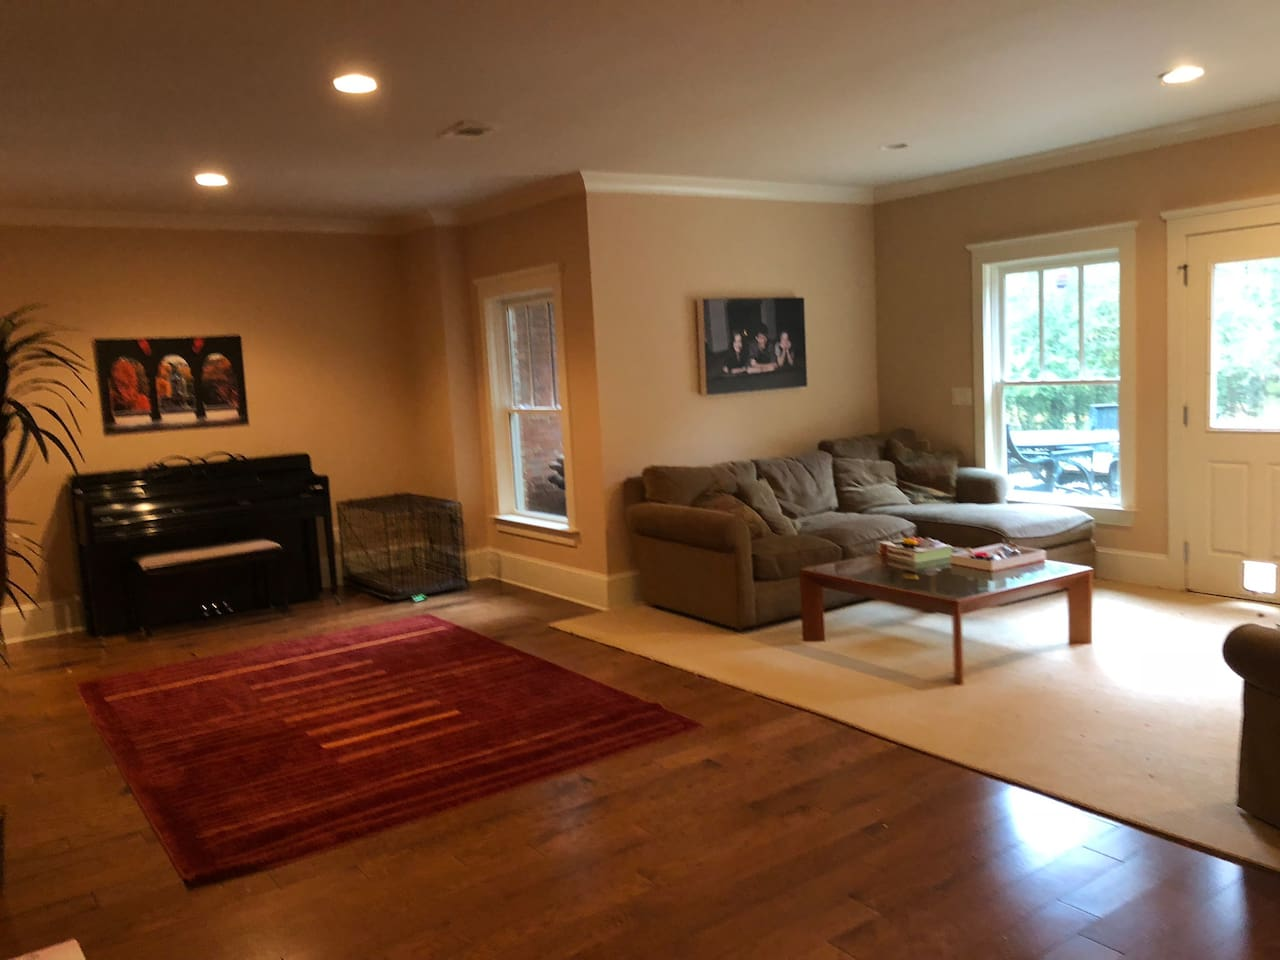 Terrace Apartment family room - French doors lead to private patio